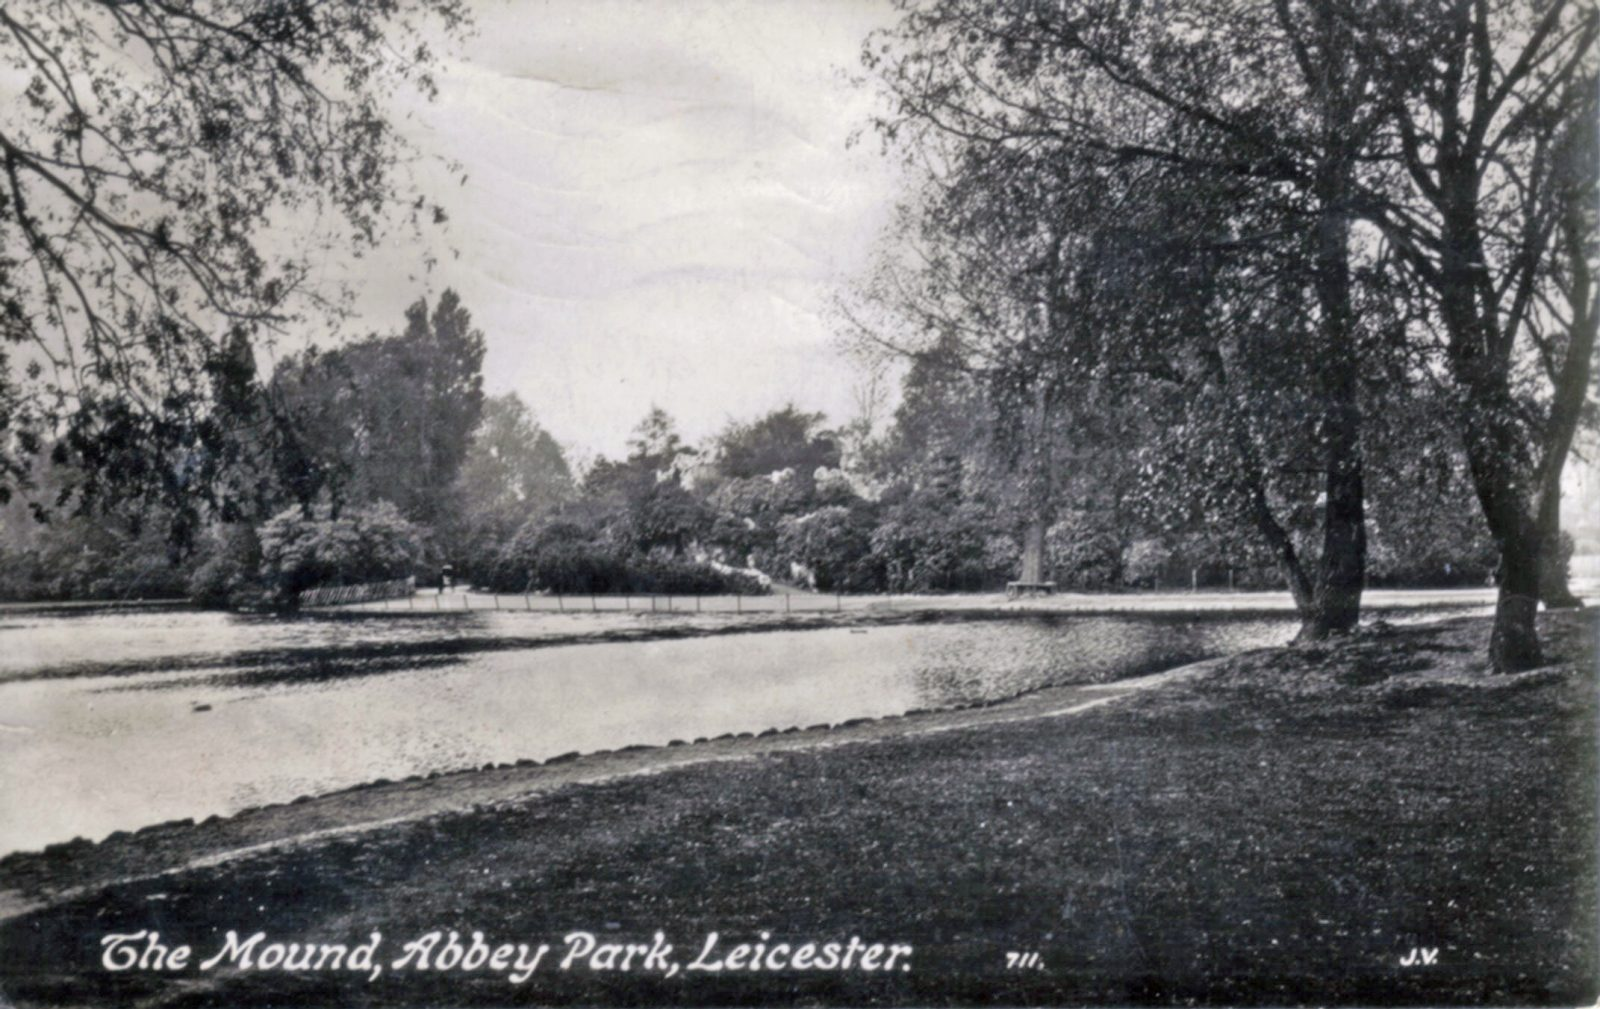 Abbey Park, Leicester. 1921-1940: The Mound with lake in foreground. Posted 1918-21 (File:1209)